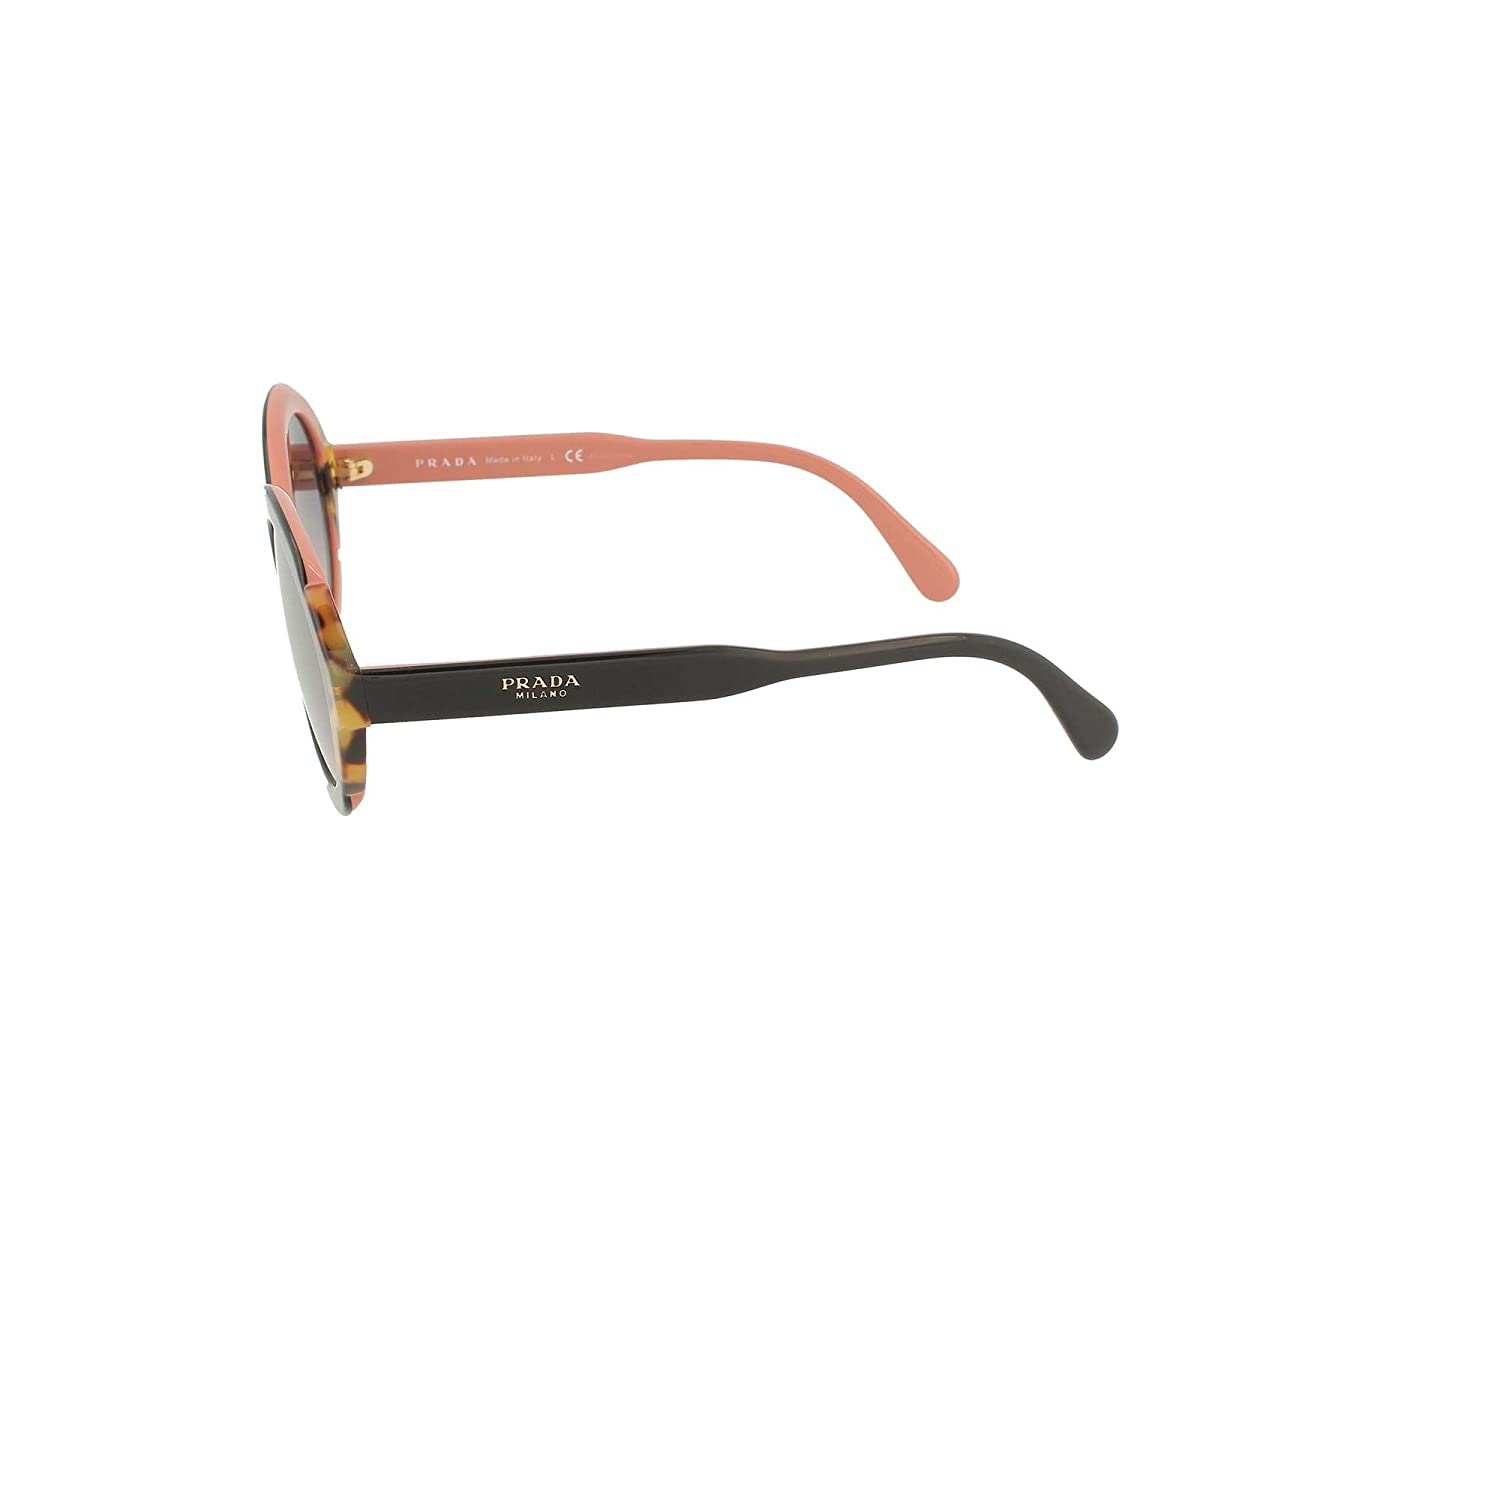 Prada 0PR 17US Gafas de sol, Top Black Pink/Medium Havana ...